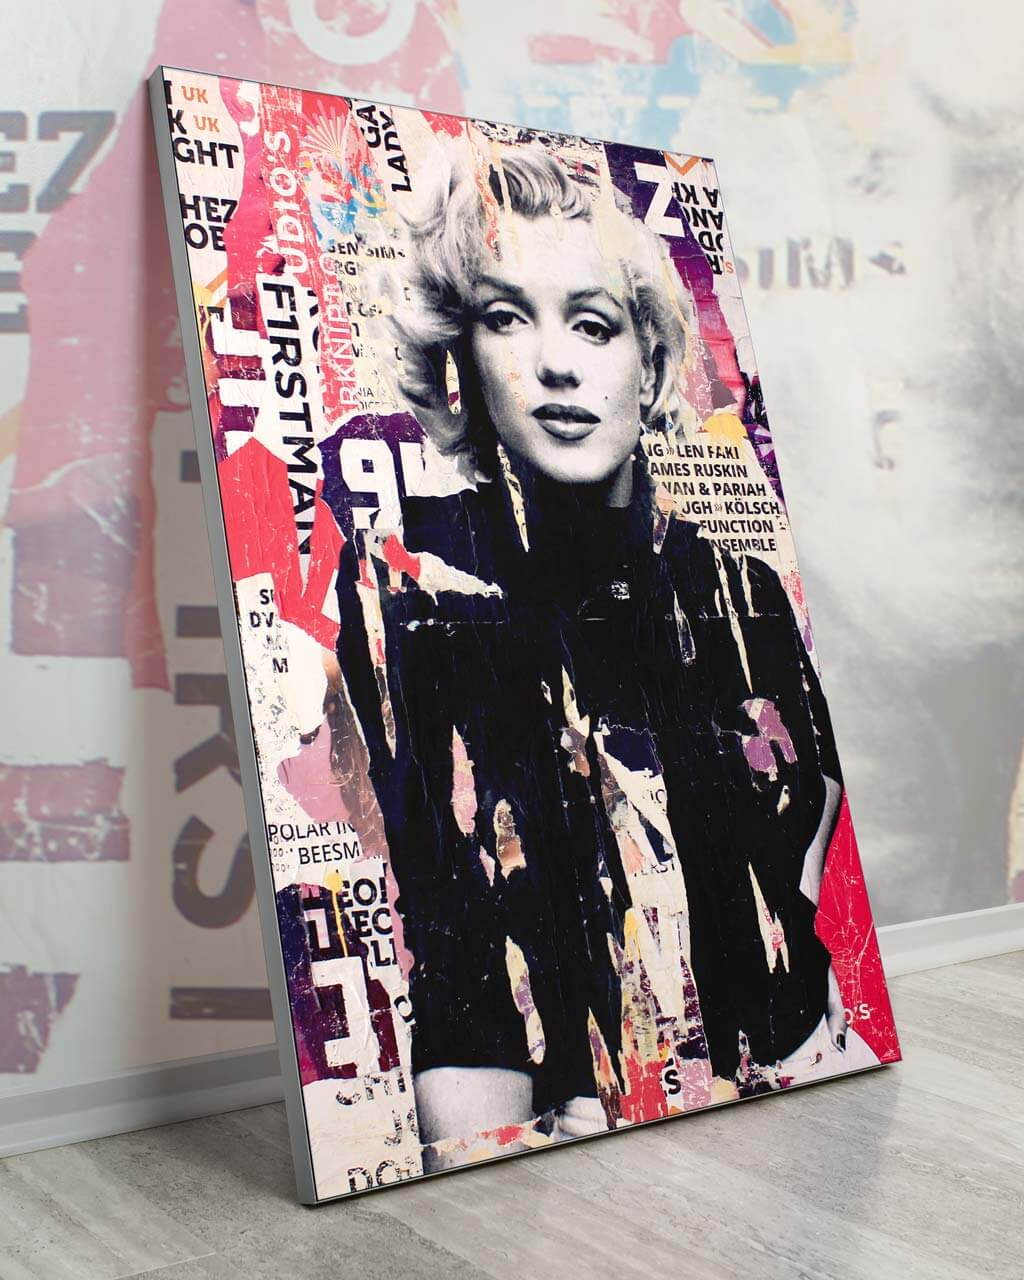 Oversized Wall Decor Marilyn Monroe Art Big Biggest Huge Large Massive Largest Giant Gigantic Wall Décor Art Backlit Fabric Home Deco Artwork Michiel Folkers Painting Collage Celebrity Newspaper Newsprint Graphic Abstract Instagram Digital